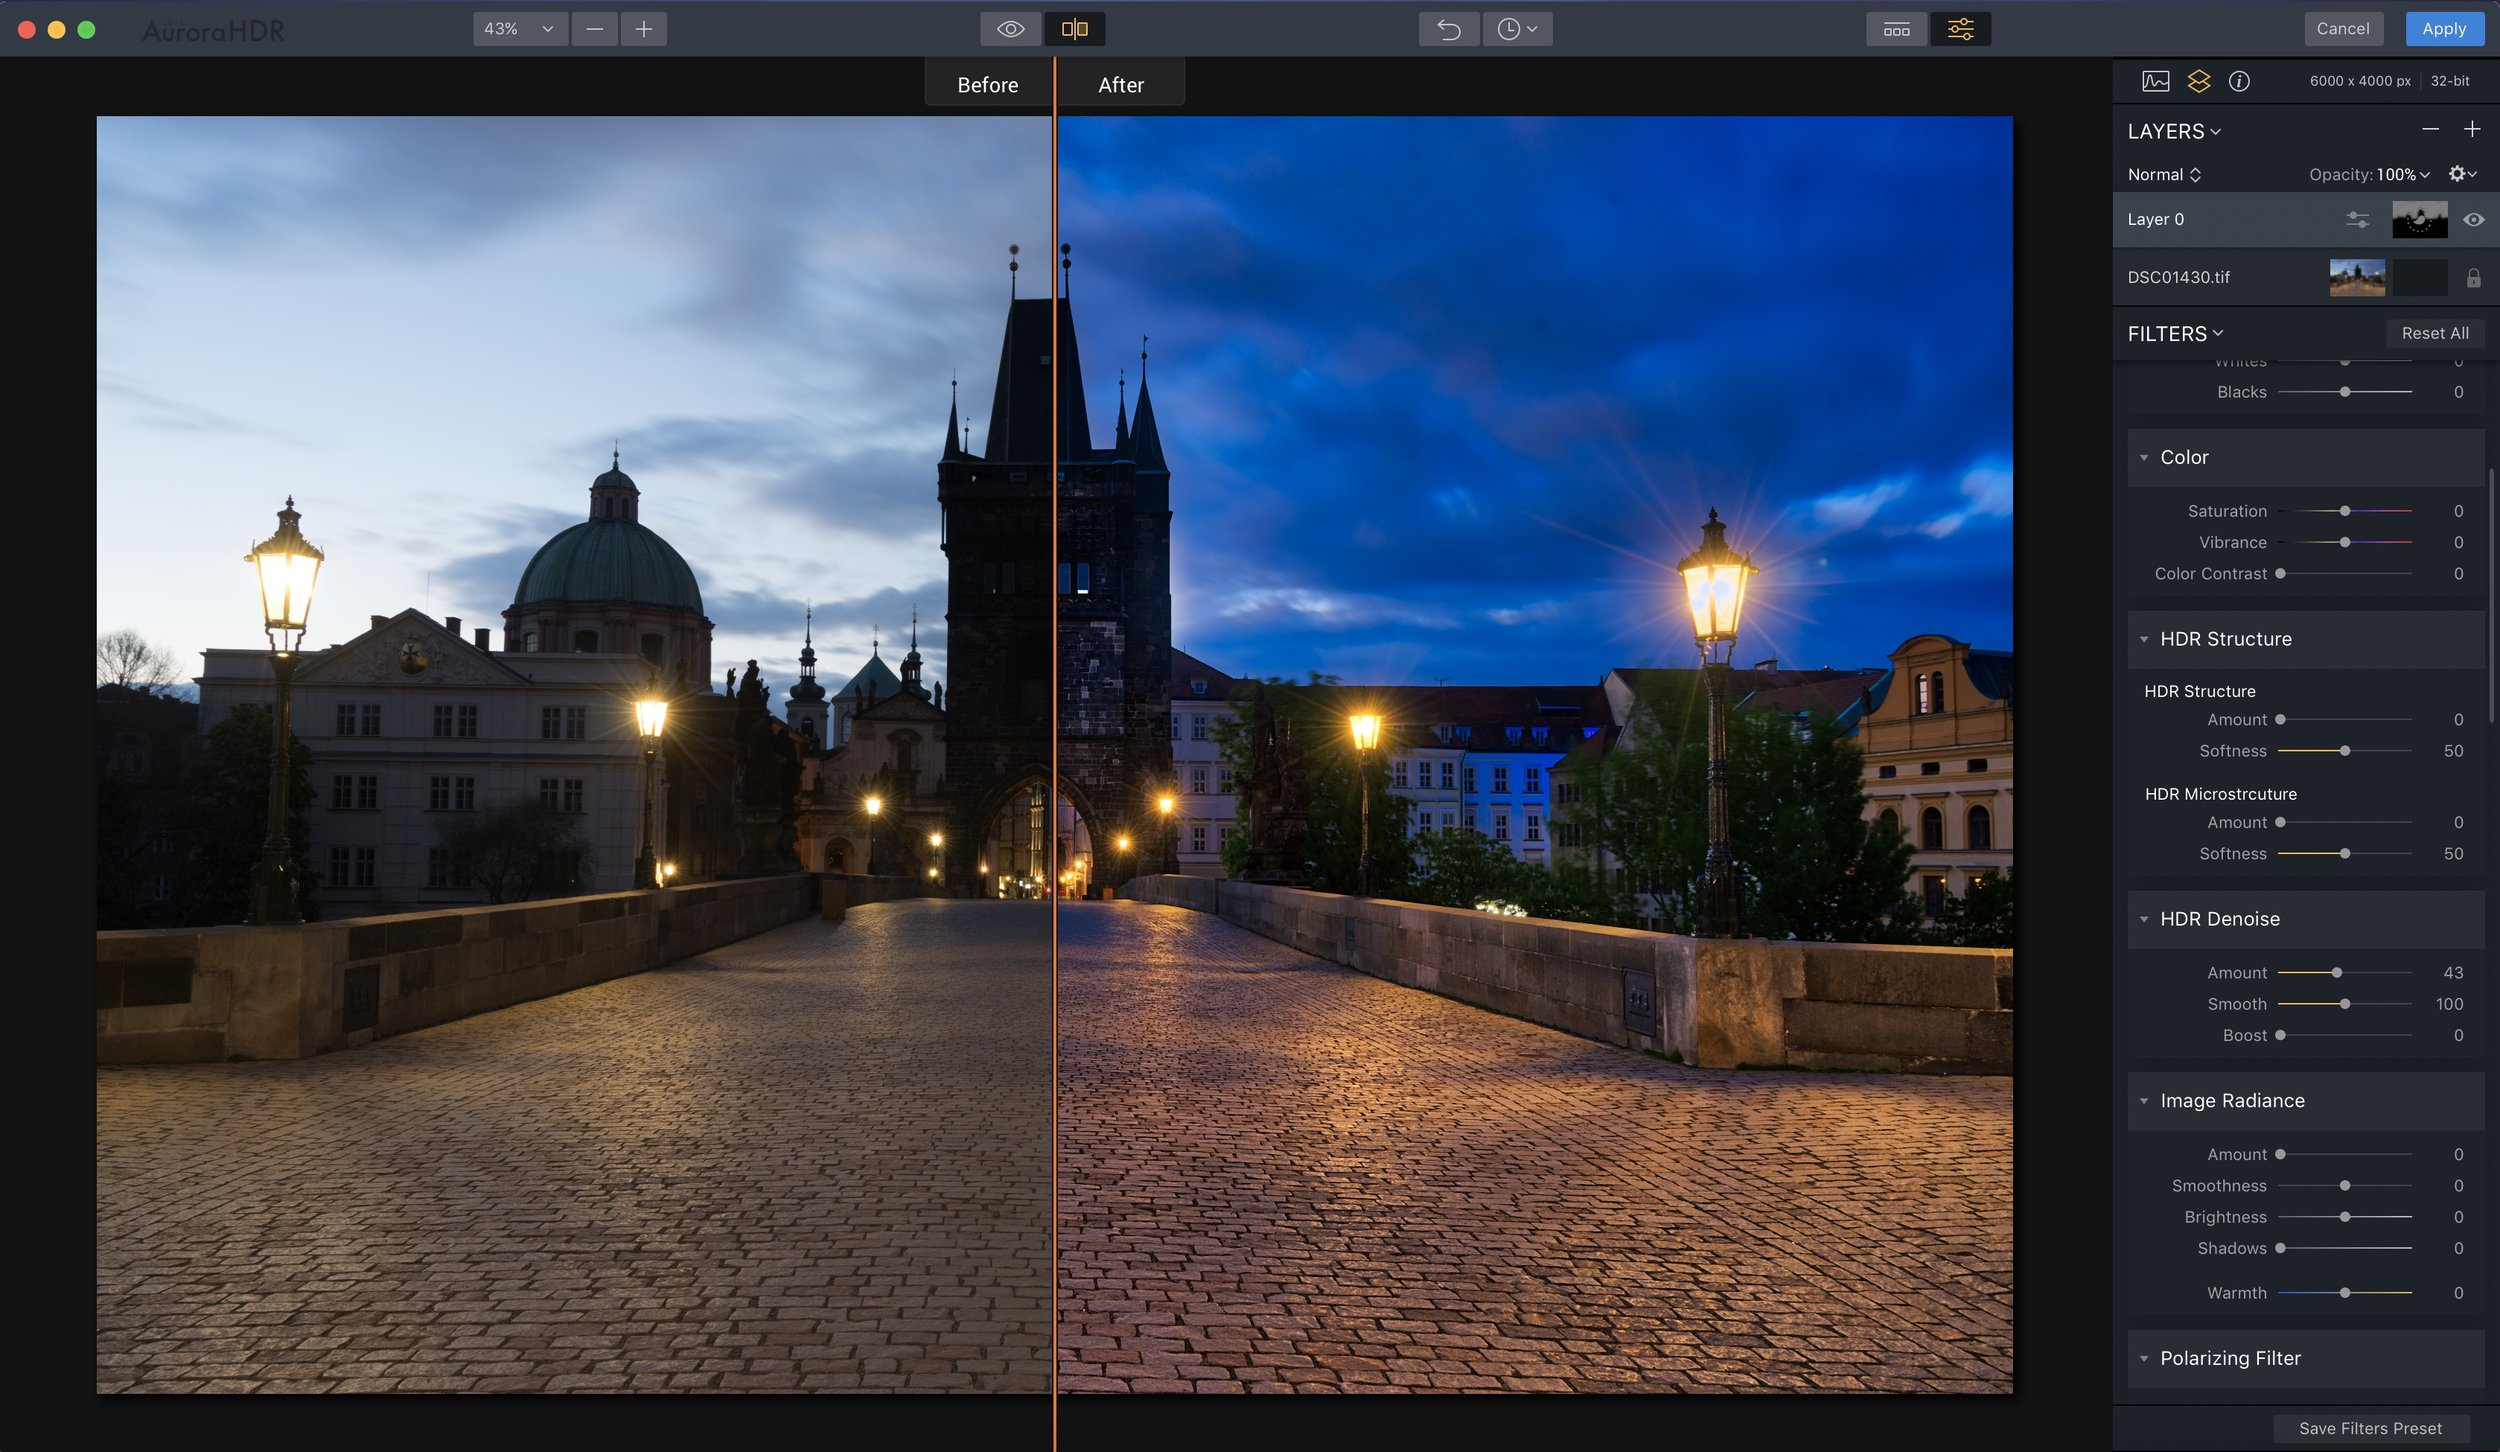 Here's a before/after compare so you can see that you can obviously make your own stylistic choices once you start moving filters around.